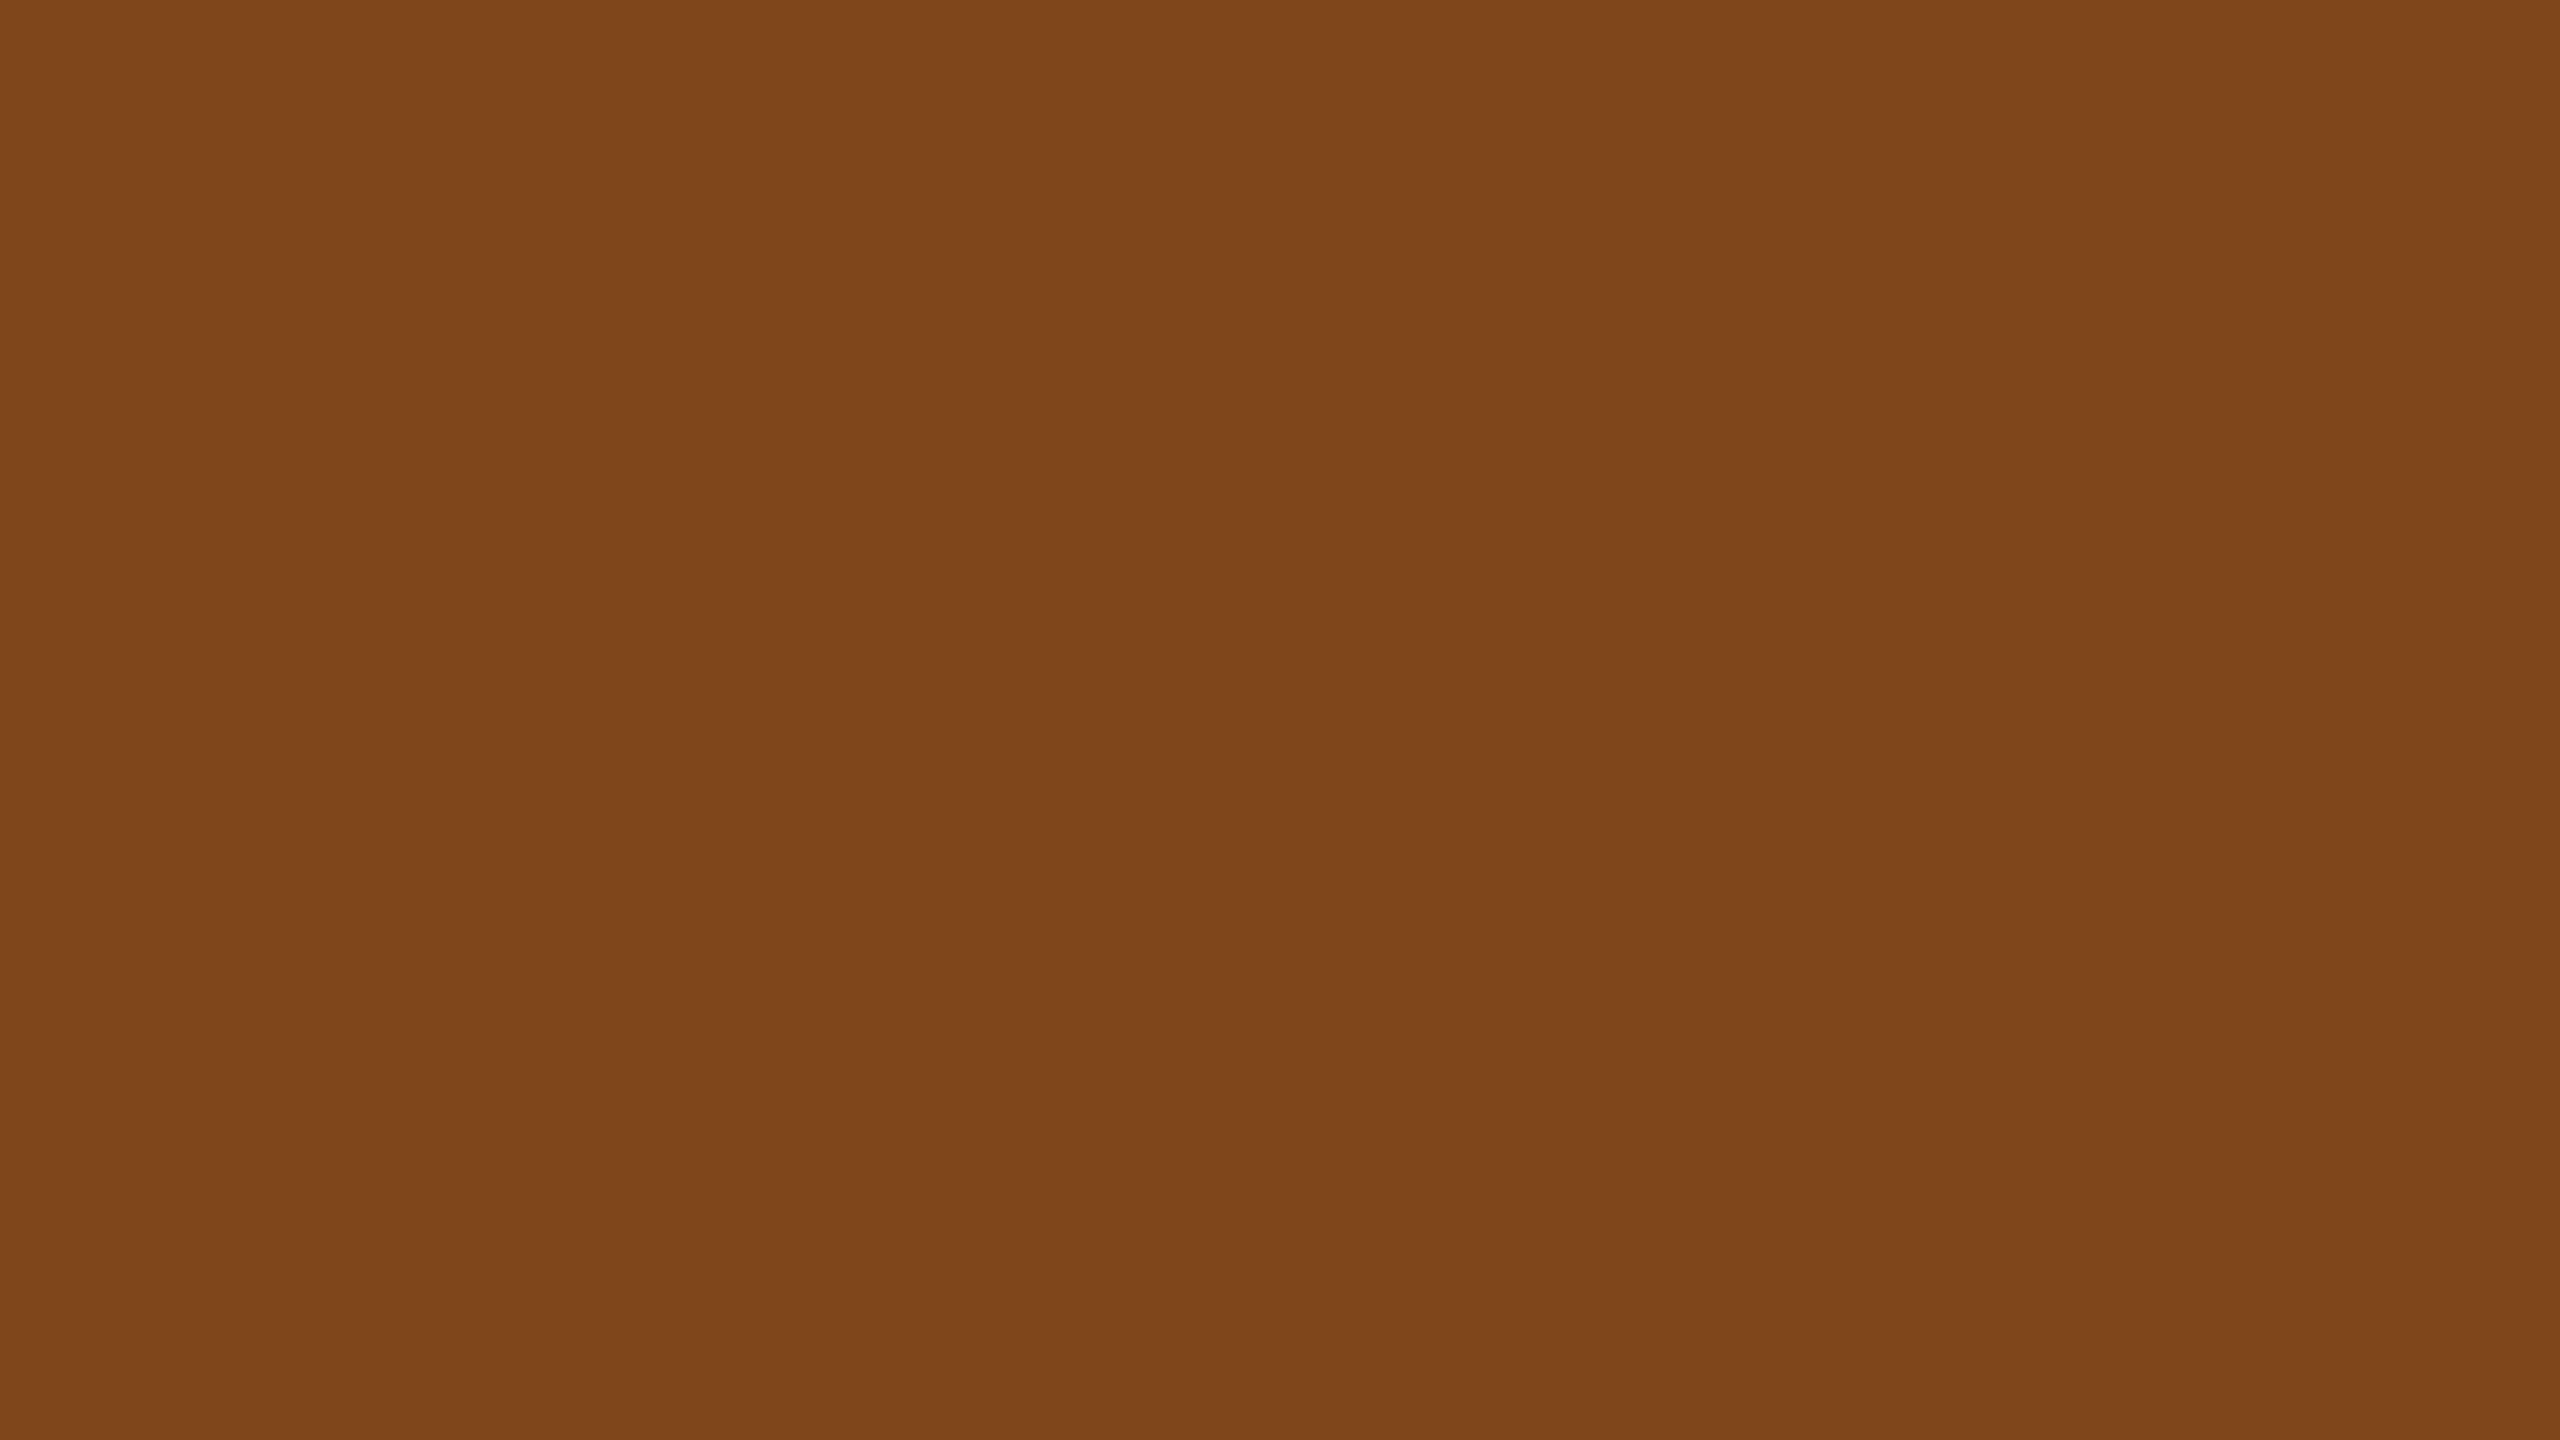 2560x1440 Russet Solid Color Background